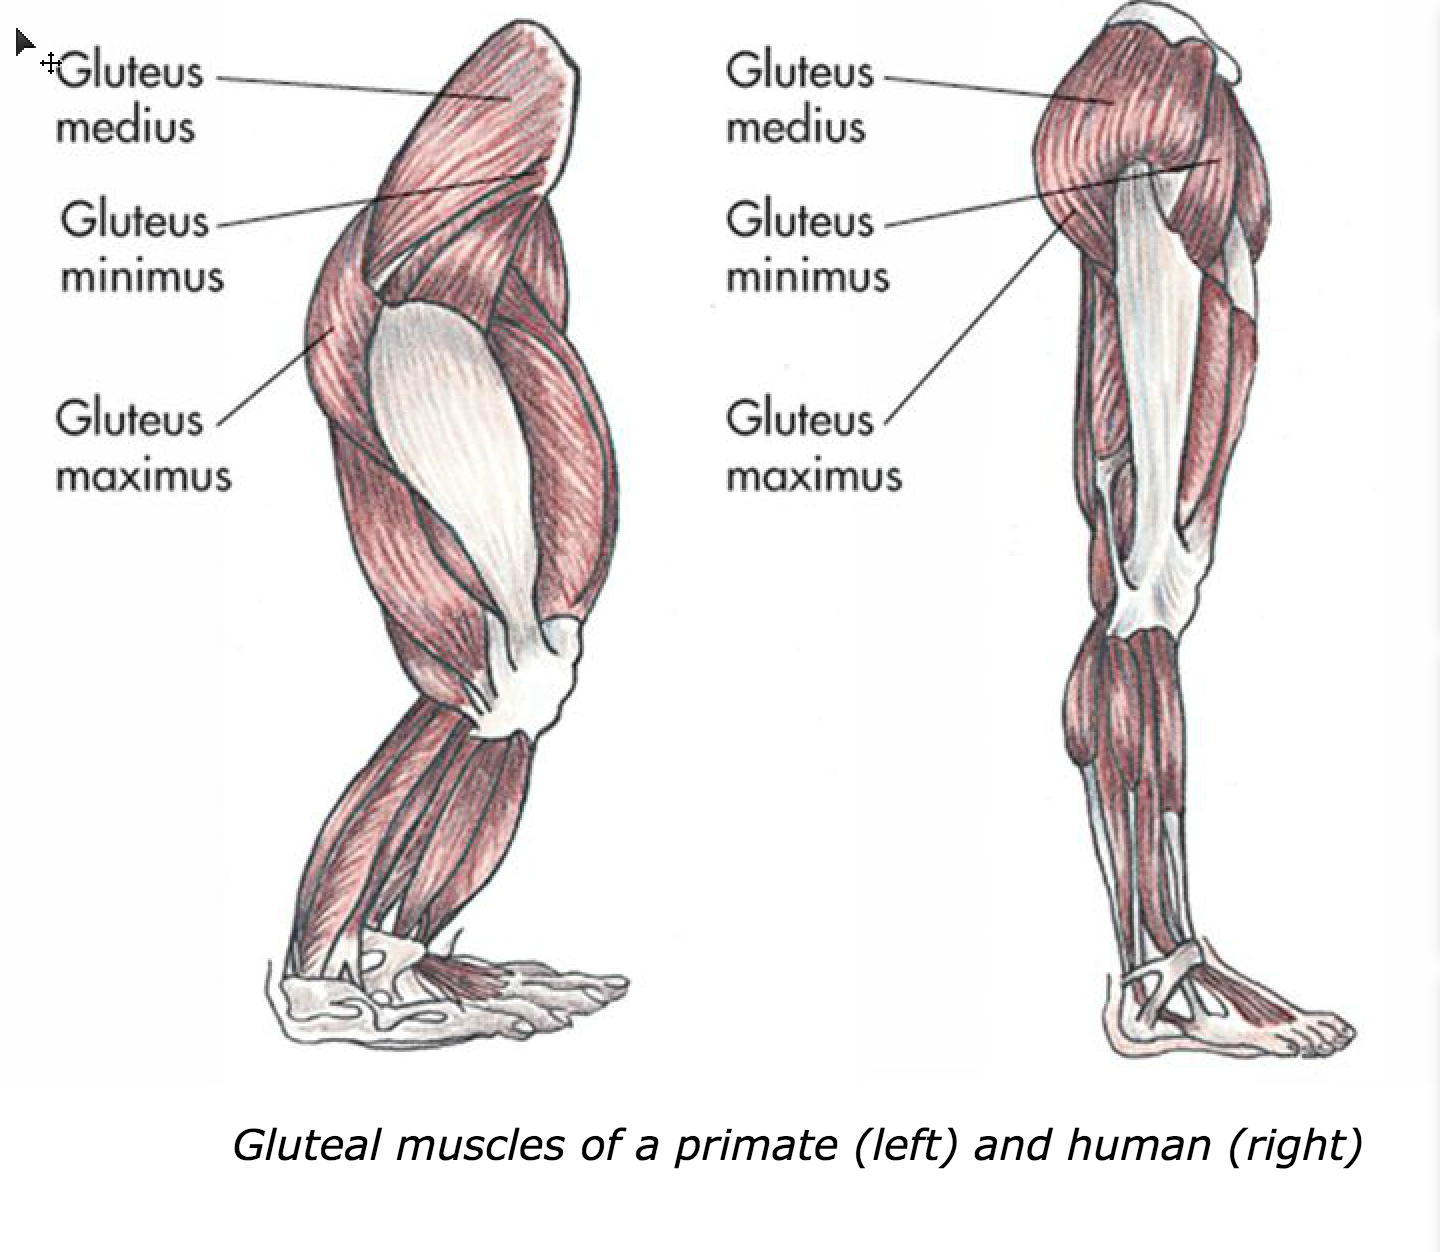 Glutes primate and human